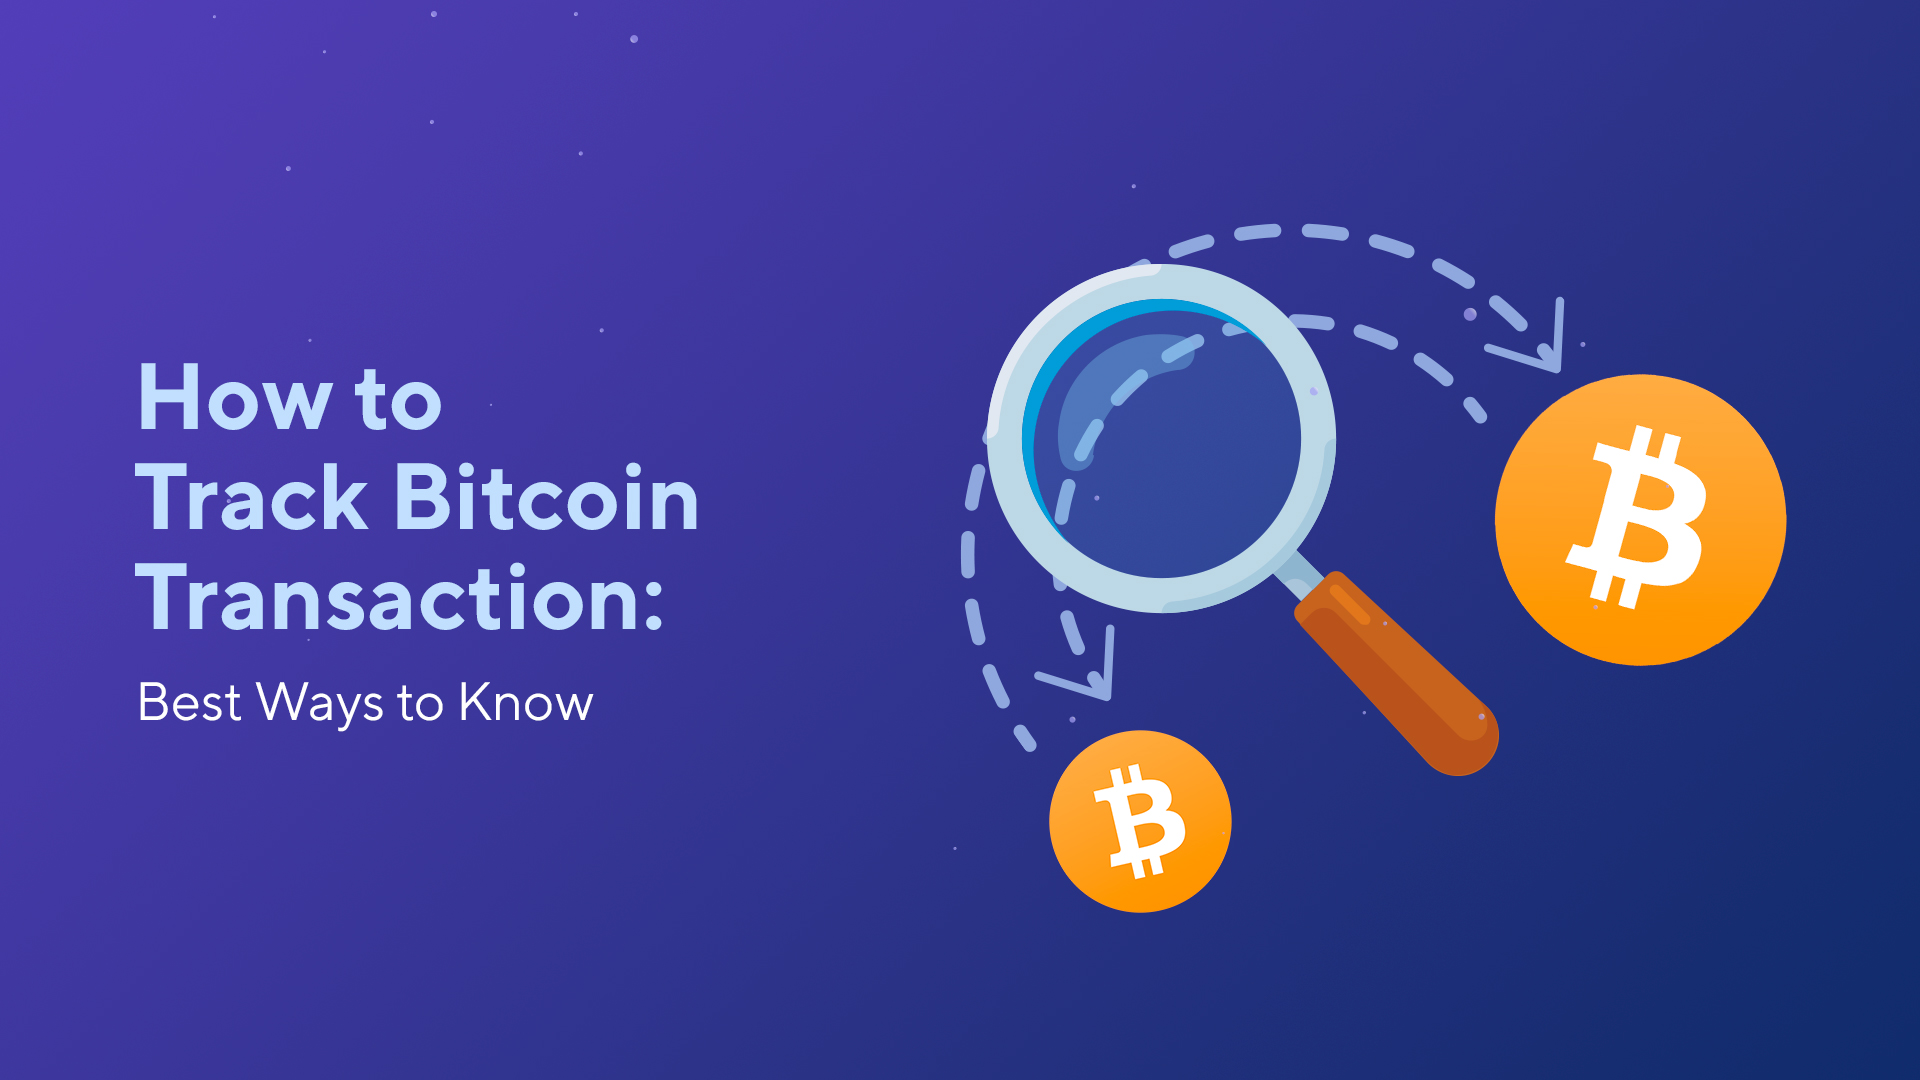 How to Track Bitcoin Transaction: Best Ways to Know